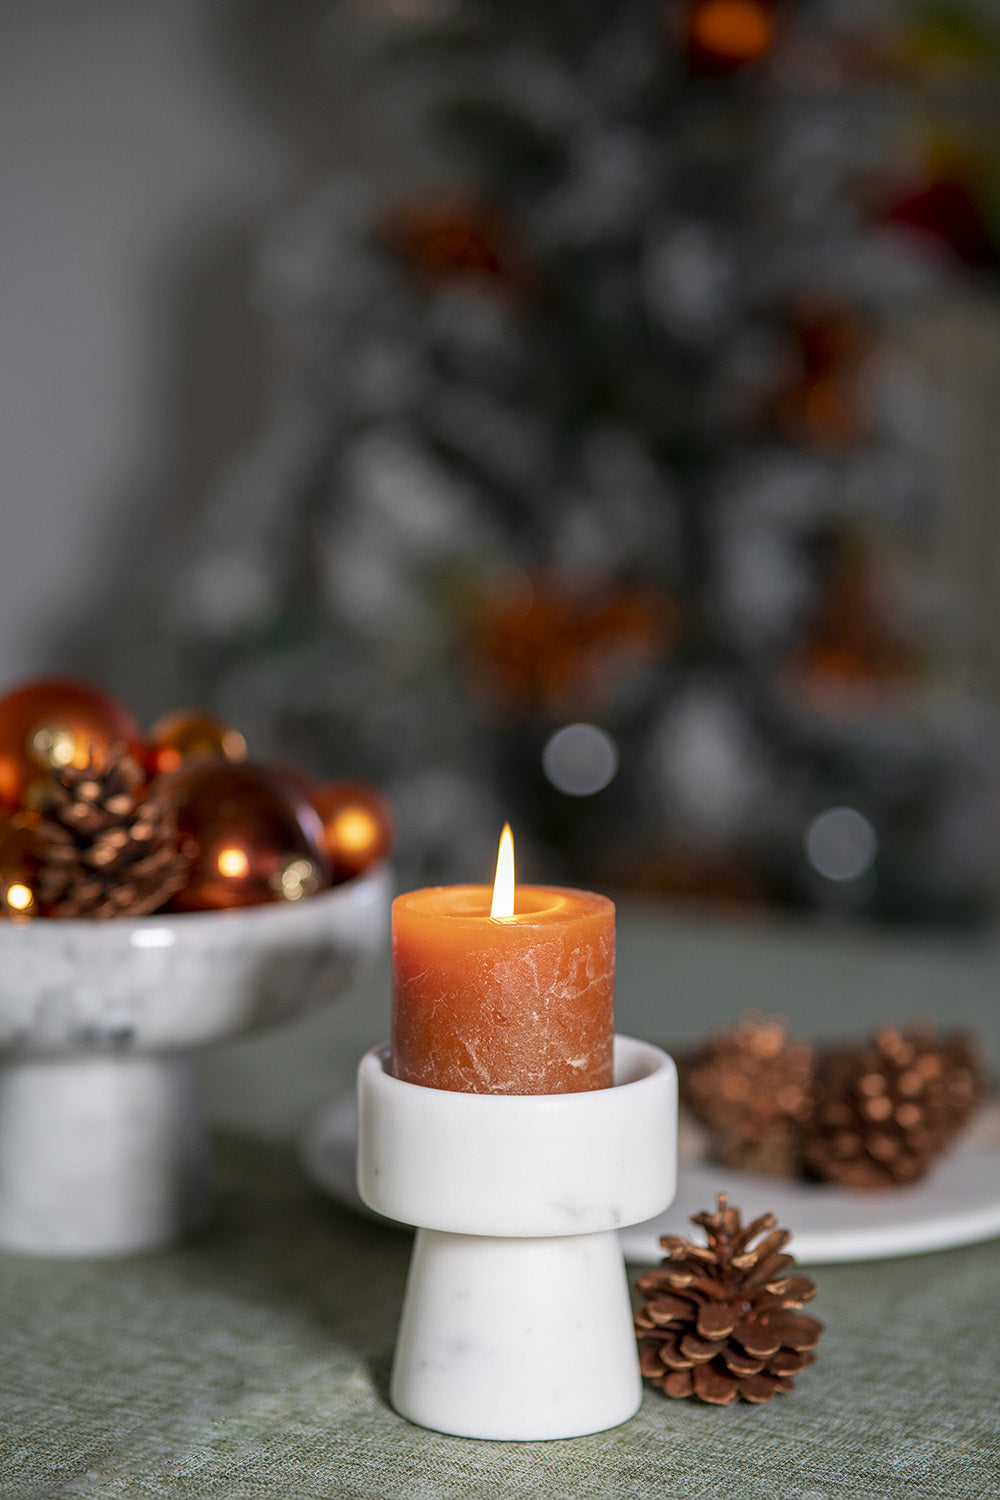 Candle Holder by CARRARA_HOME_DESIGN® in Marmo Bianco Carrara